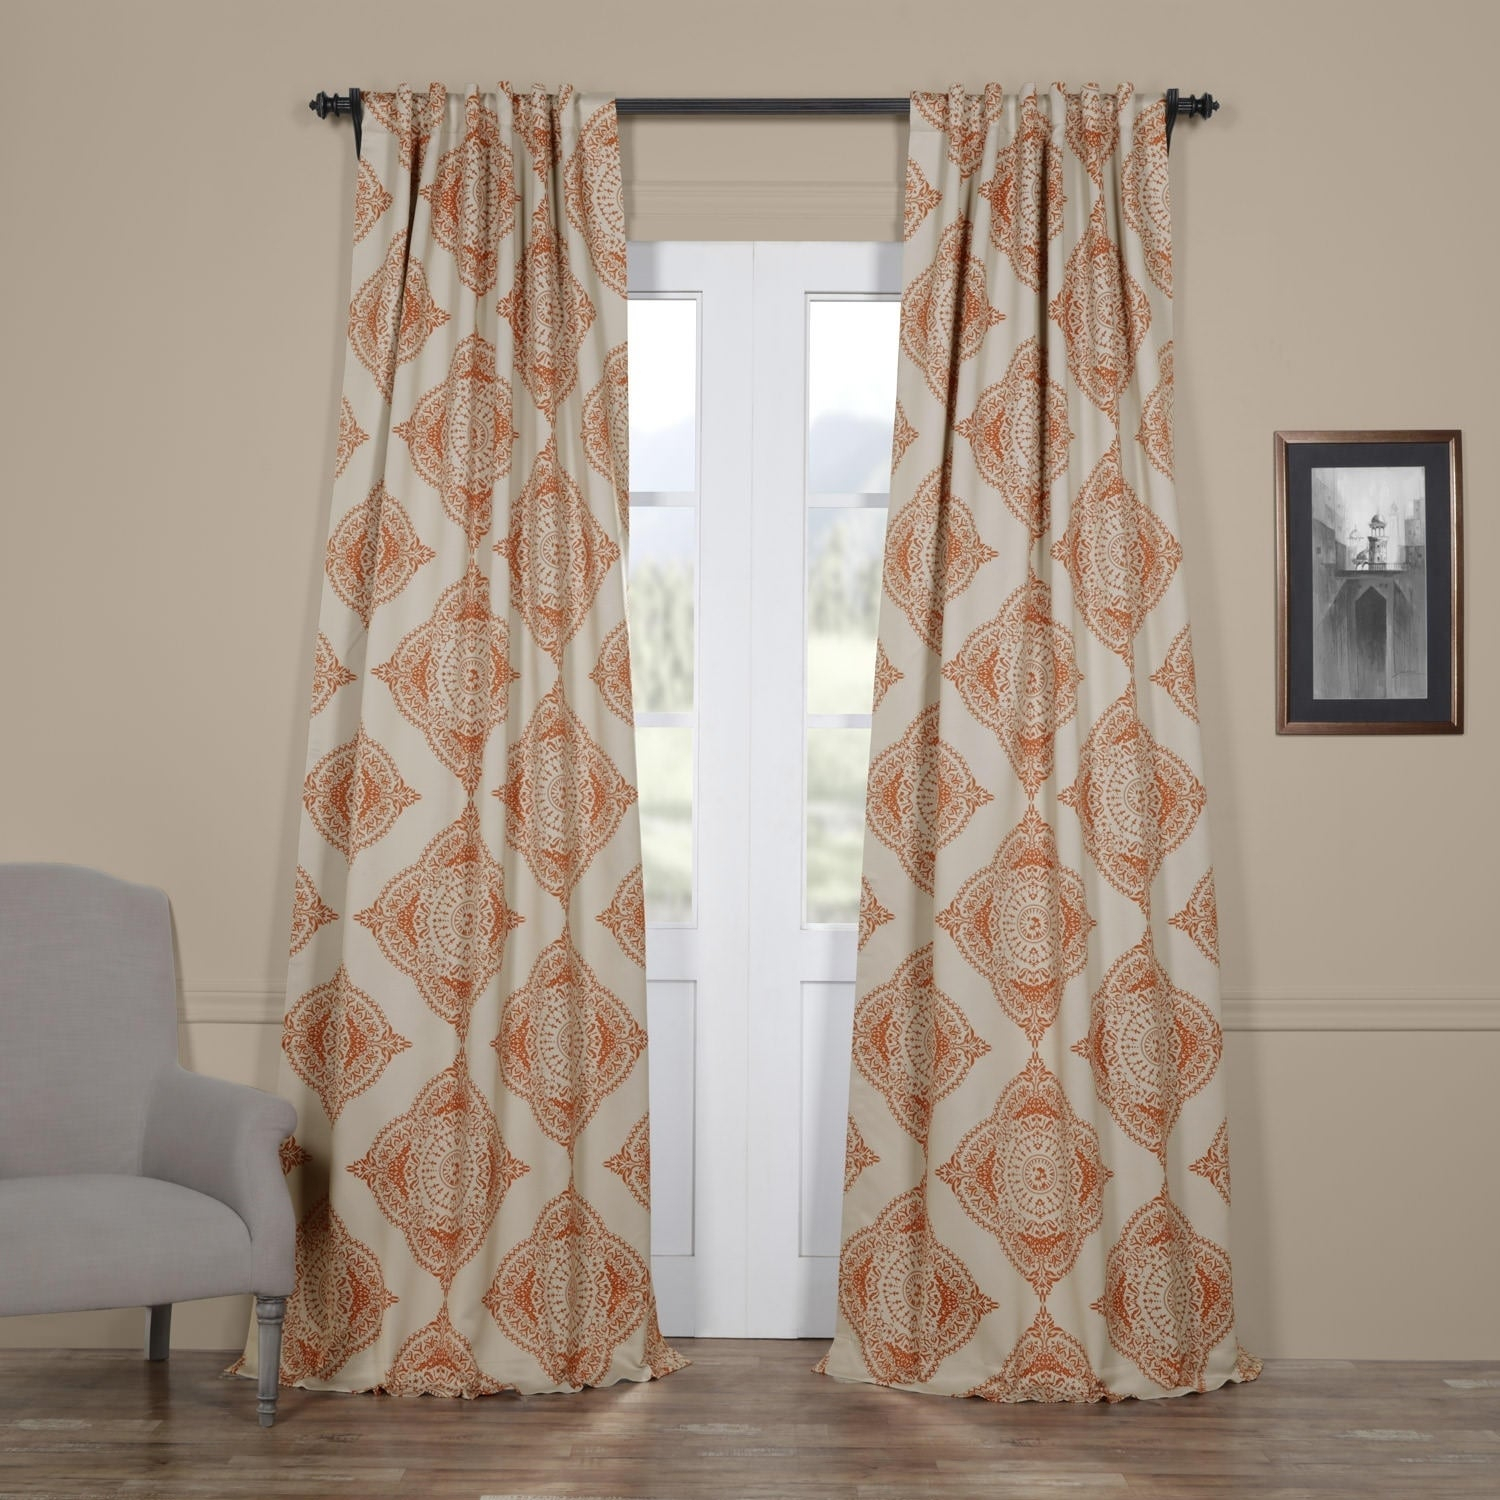 Moroccan Style Thermal Insulated Blackout Curtain Panel Pair Intended For Thermal Insulated Blackout Curtain Panel Pairs (View 5 of 30)